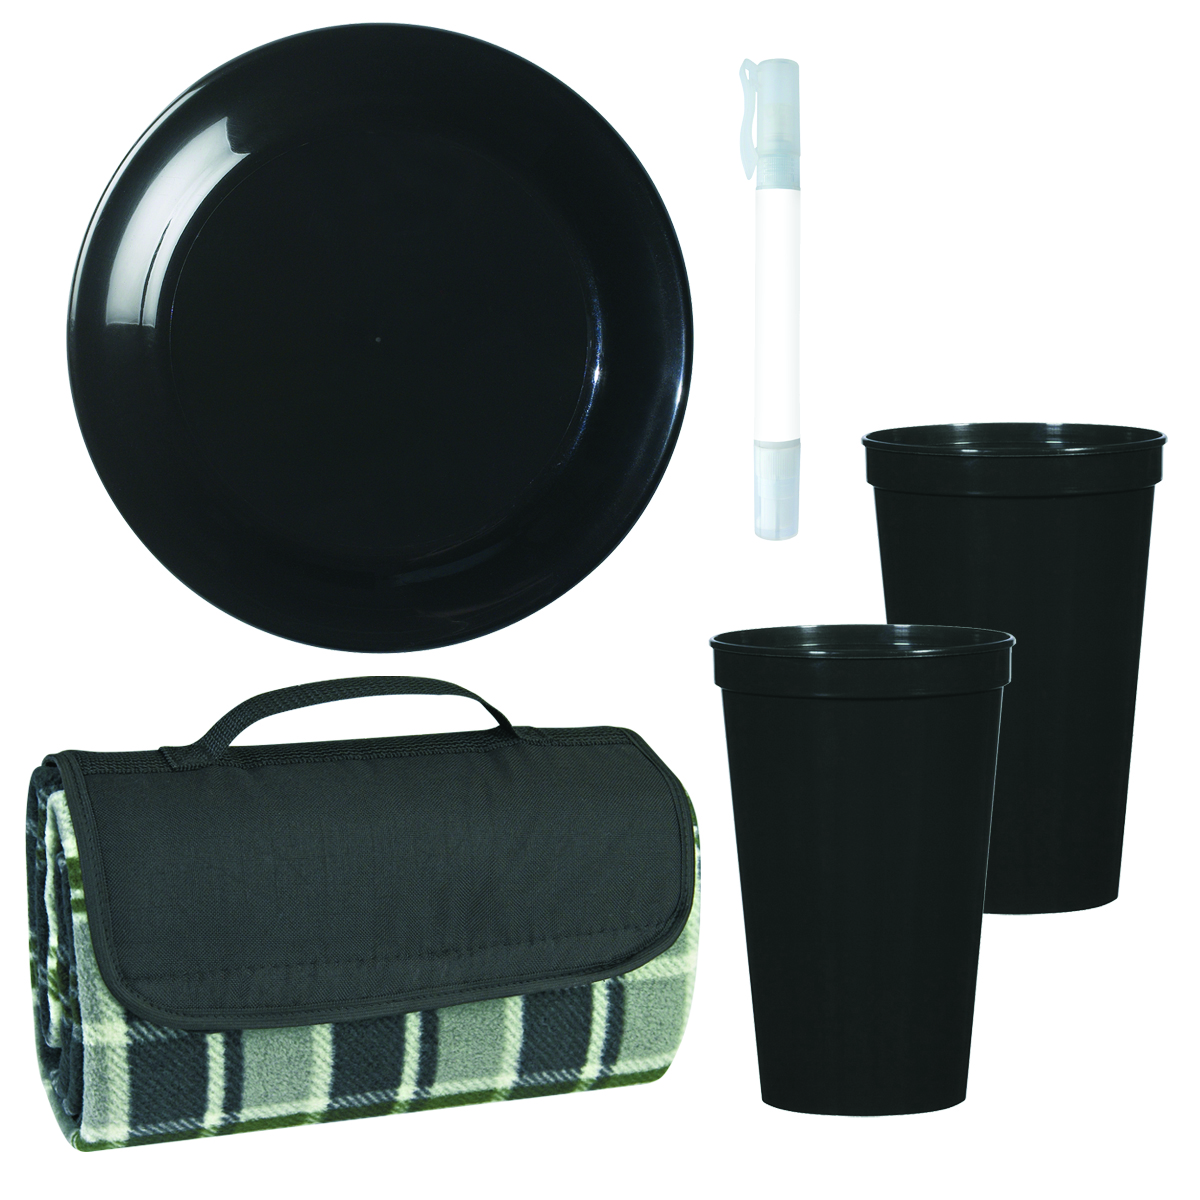 Black (Black/Gray Plaid Blanket, Black Discus and Stadium Cups) Picnic In The Park Kit